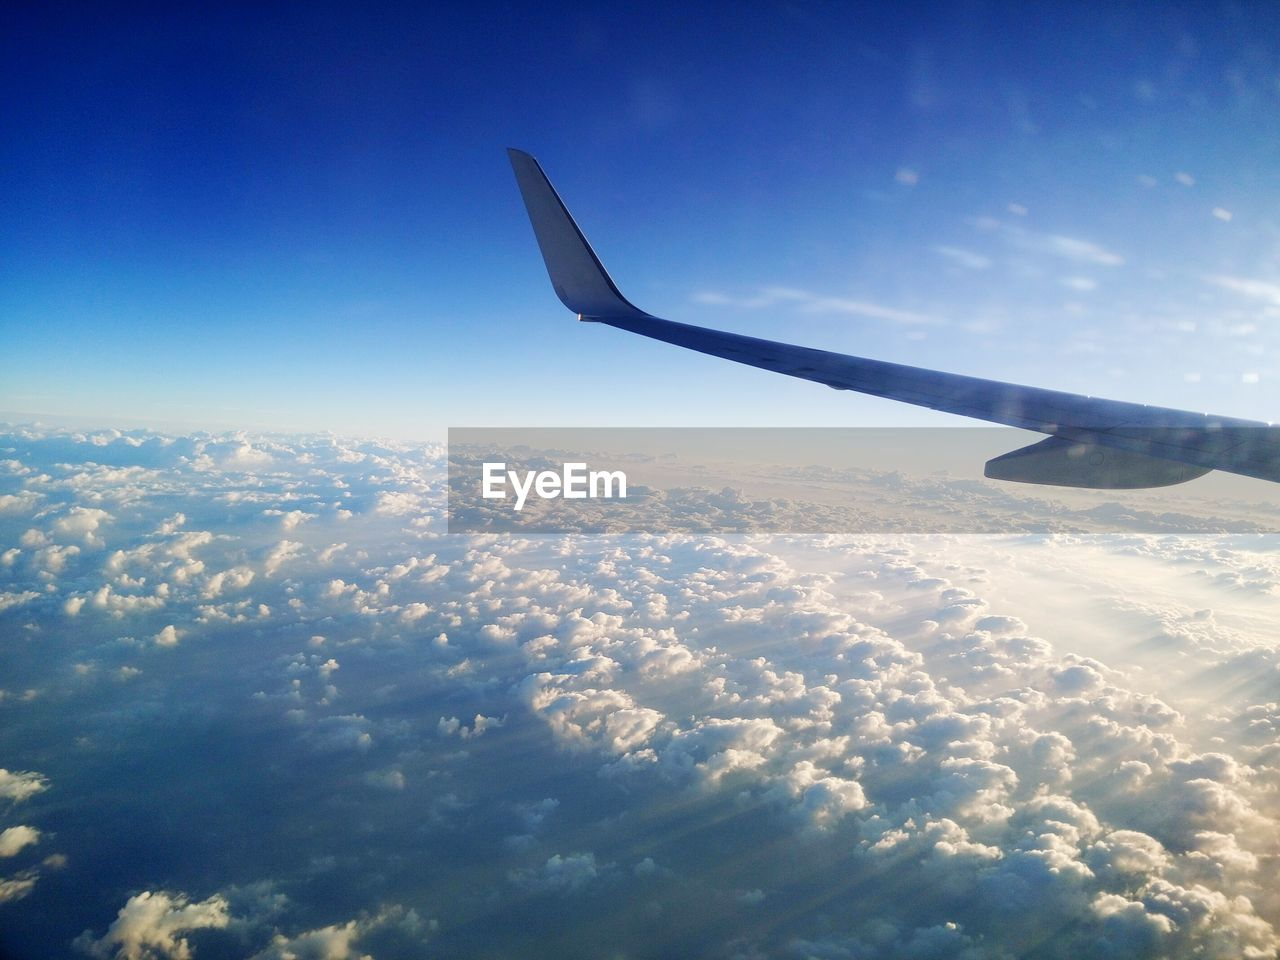 sky, aerial view, nature, beauty in nature, blue, cloudscape, journey, airplane, transportation, scenics, airplane wing, tranquil scene, cloud - sky, travel, tranquility, no people, day, outdoors, mid-air, flying, the natural world